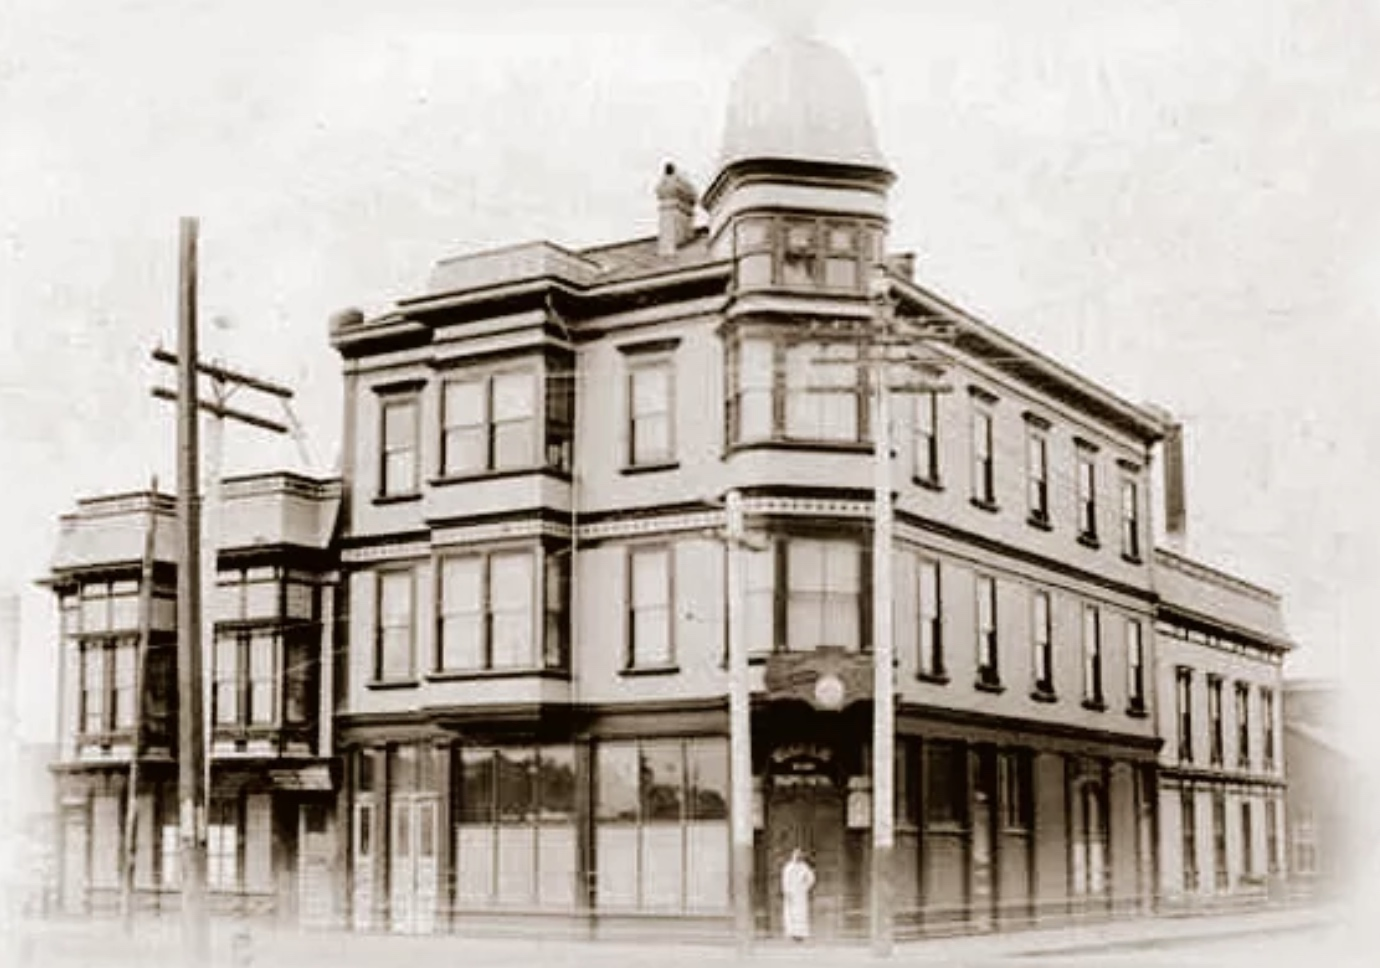 Joseph Massei and Domenico Caturegli purchased the property in 1907 and opened the Buon Gusto Hotel & Restaurant. This photograph shows the property before the top floor was added.